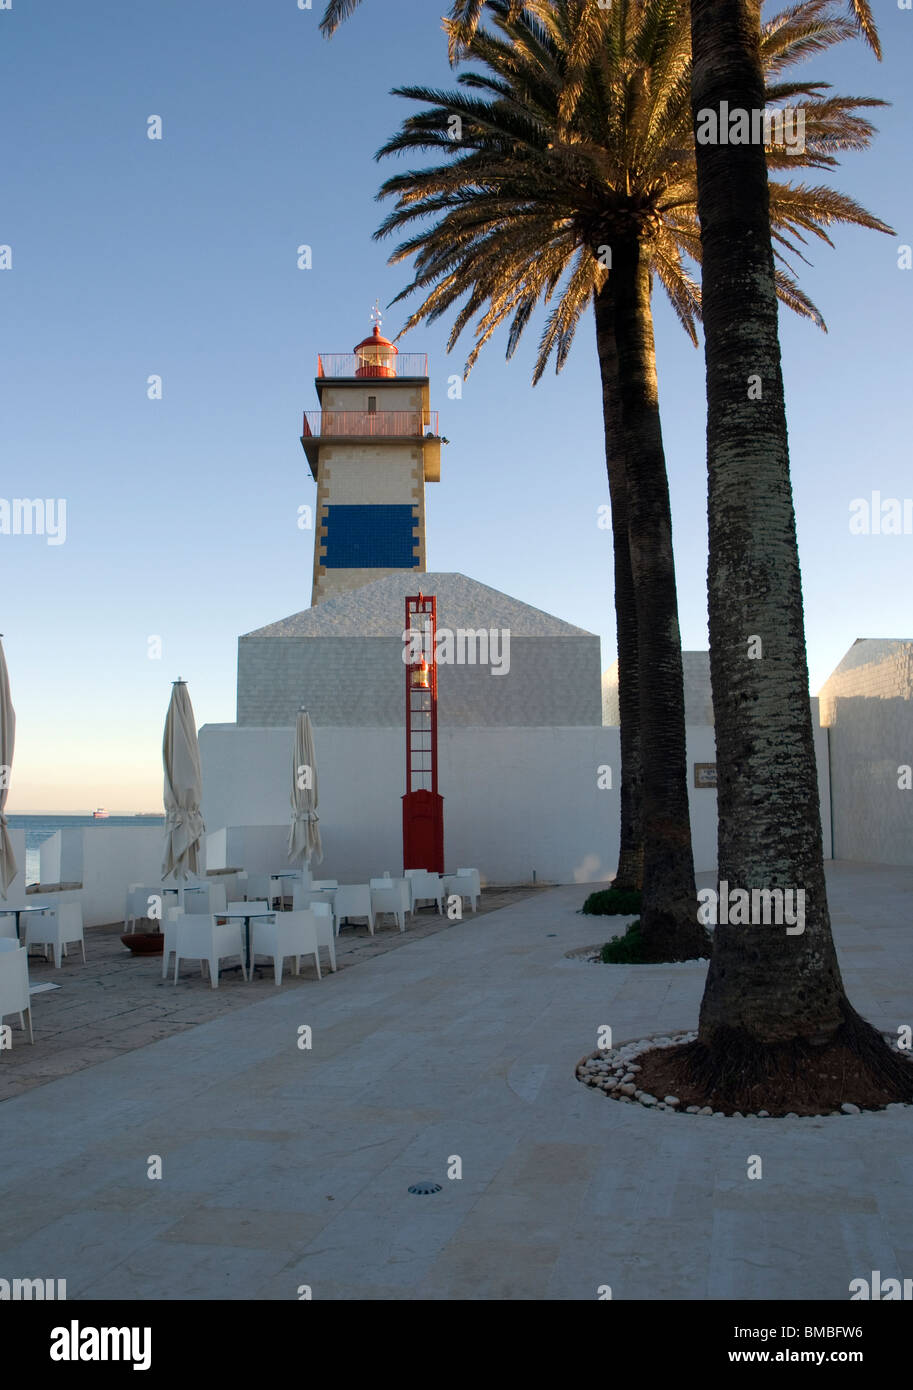 Overall View of the Santa Marta Lighthouse, Cascais, Lisbon, portugal - Stock Image